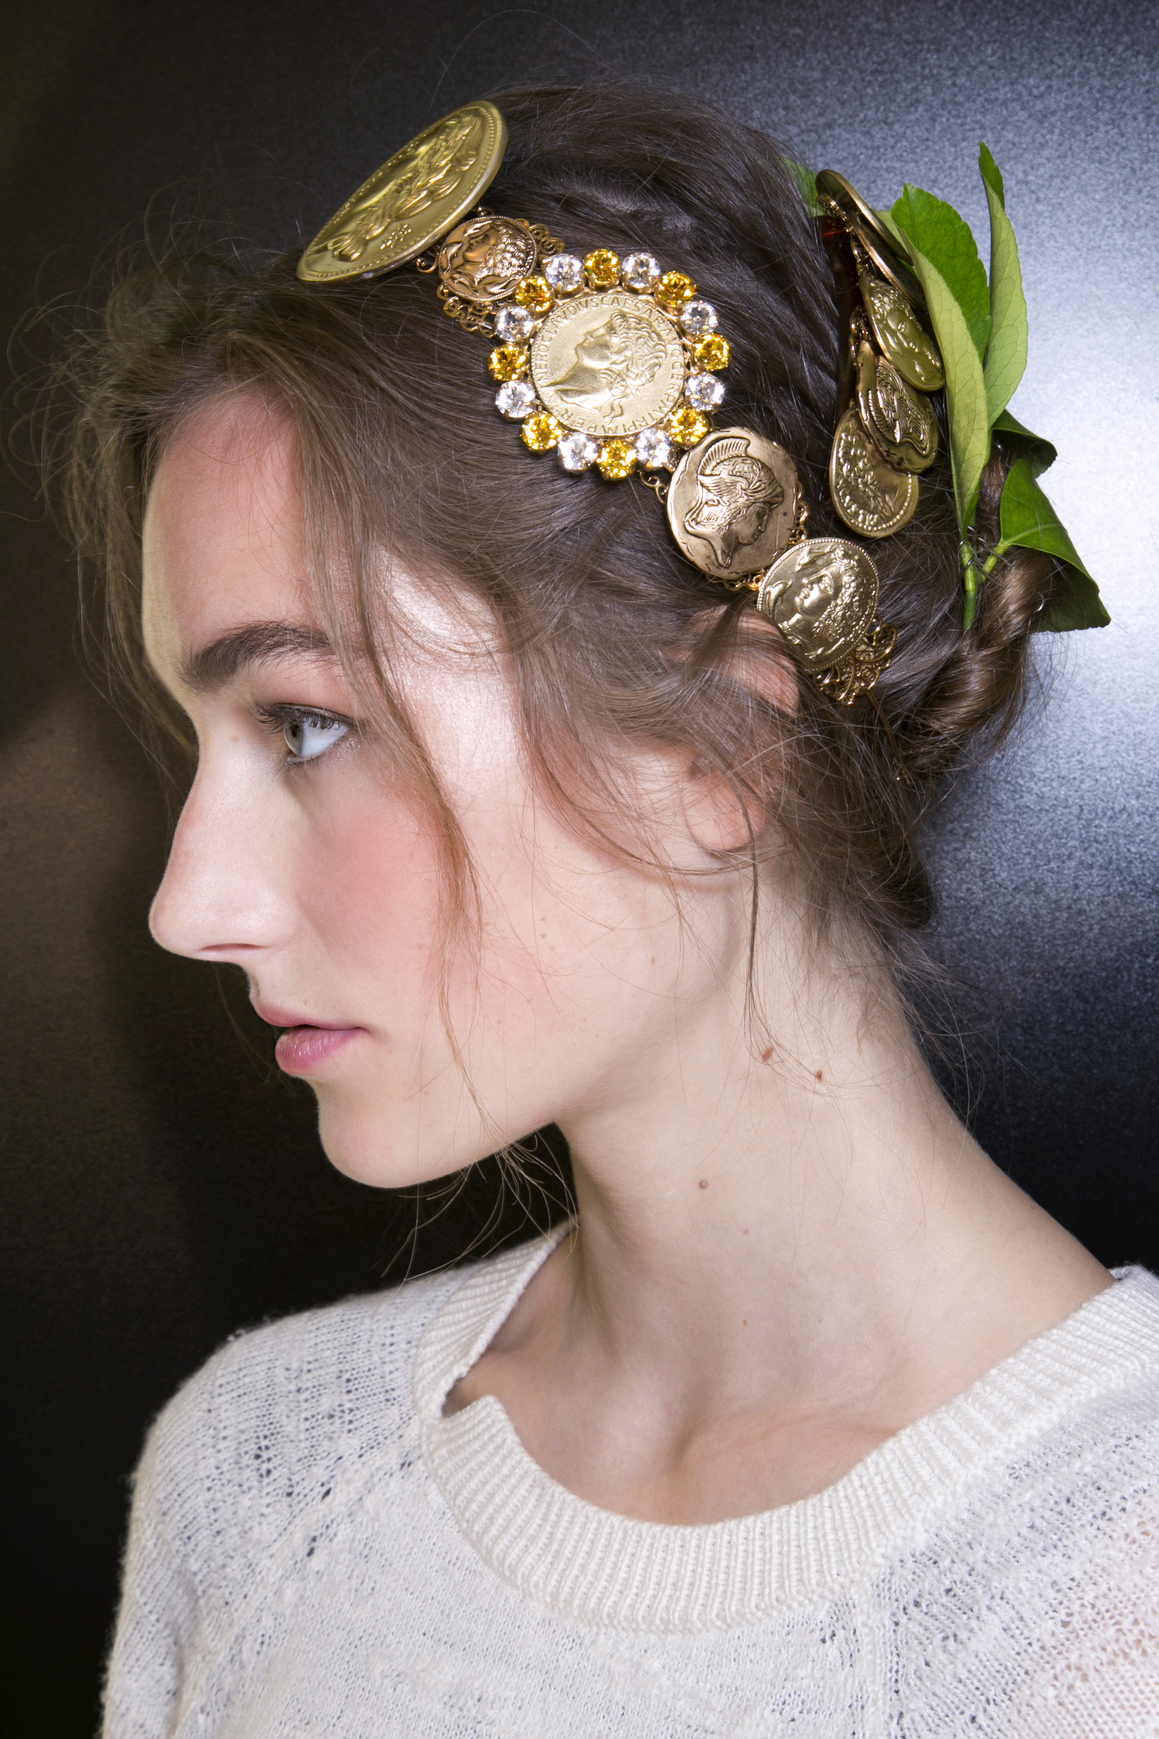 Dolce & Gabbana hair accessory